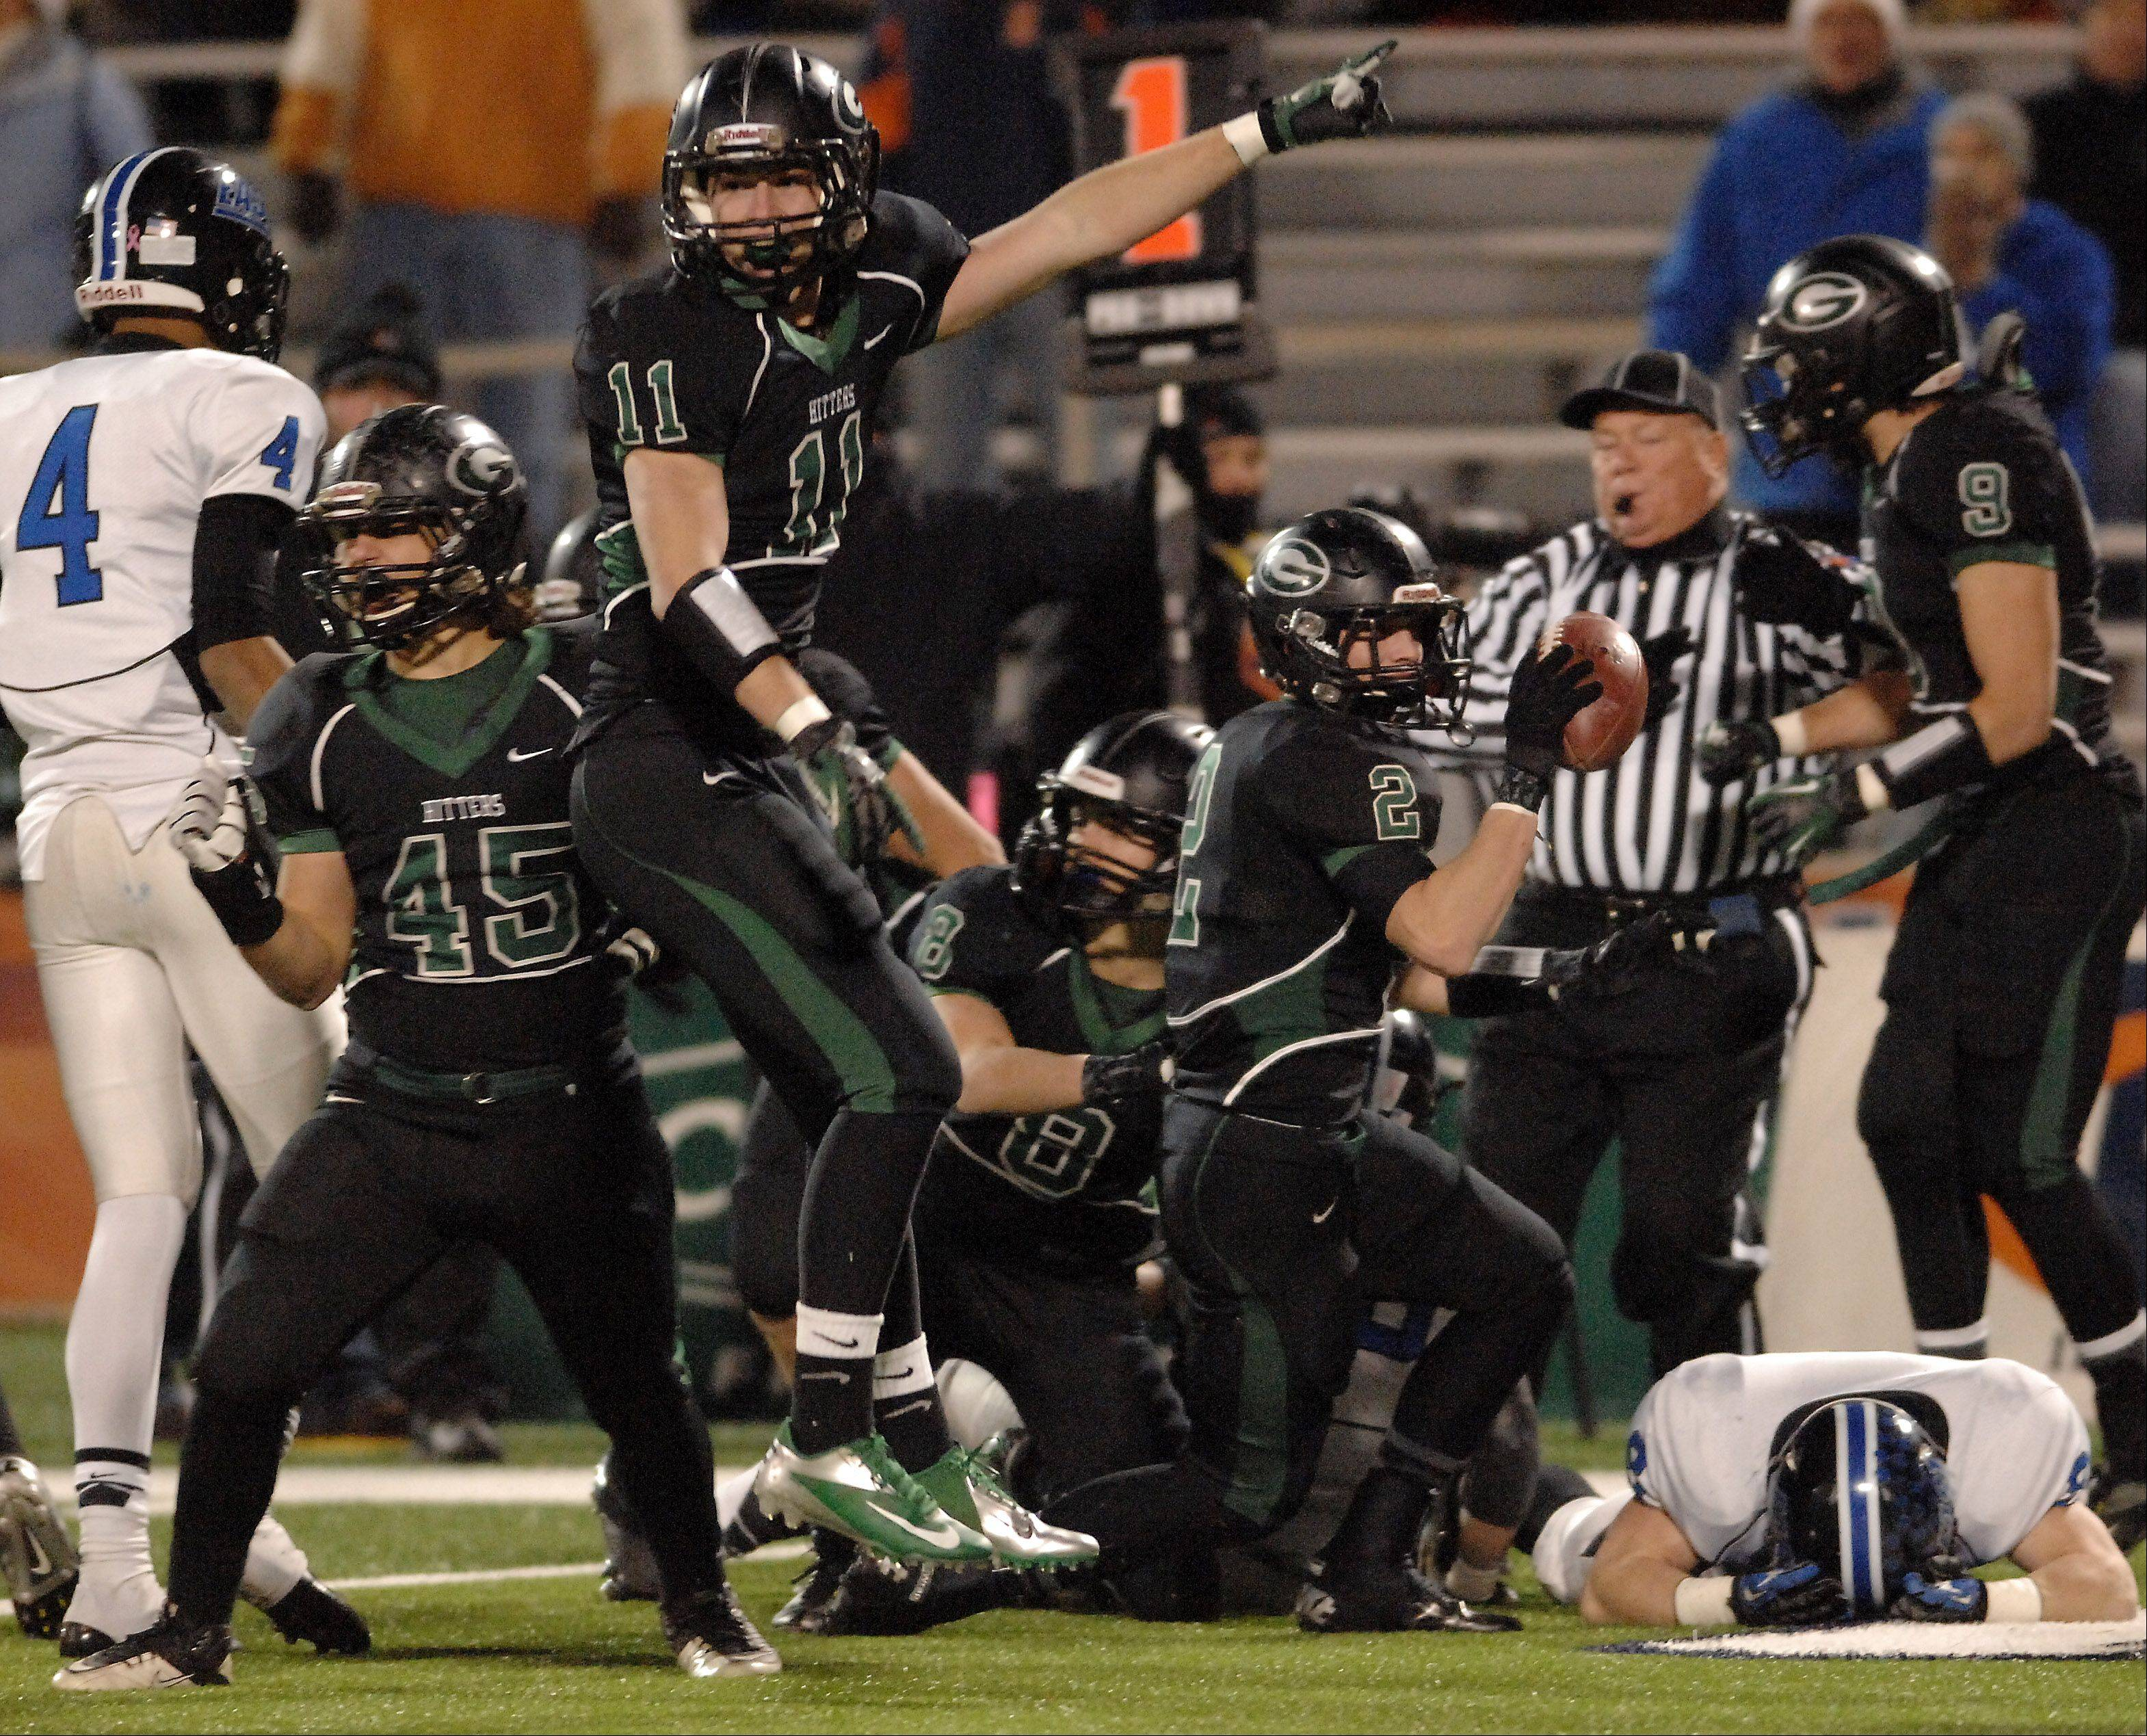 Glenbard West players, including Jordan Hassan, 45, and Grant Greeno, 11, celebrate as Joe Marconi, 2, comes up with a fumble recovery during Saturday's Class 7A state title game at Memorial Stadium in Champaign.